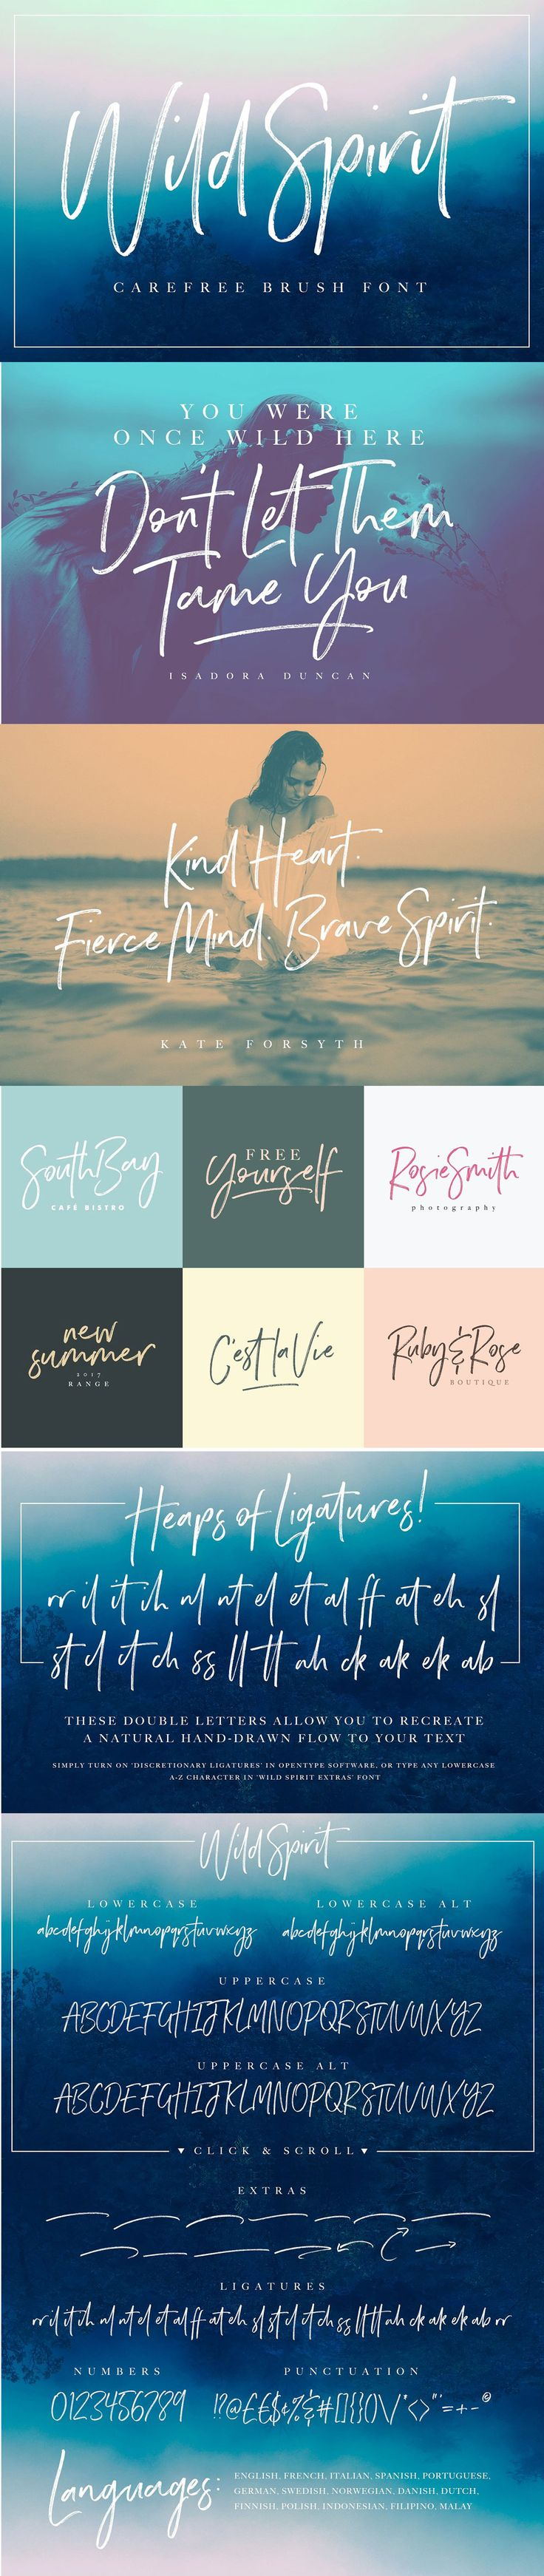 Introducing: Wild Spirit #Font : It's the perfect choice for personal #branding projects, #handwritten #quotes, homeware #designs, product #packaging - or simply as a modern & stylish text overlay to any background image. ( #typography #wedding #photography )